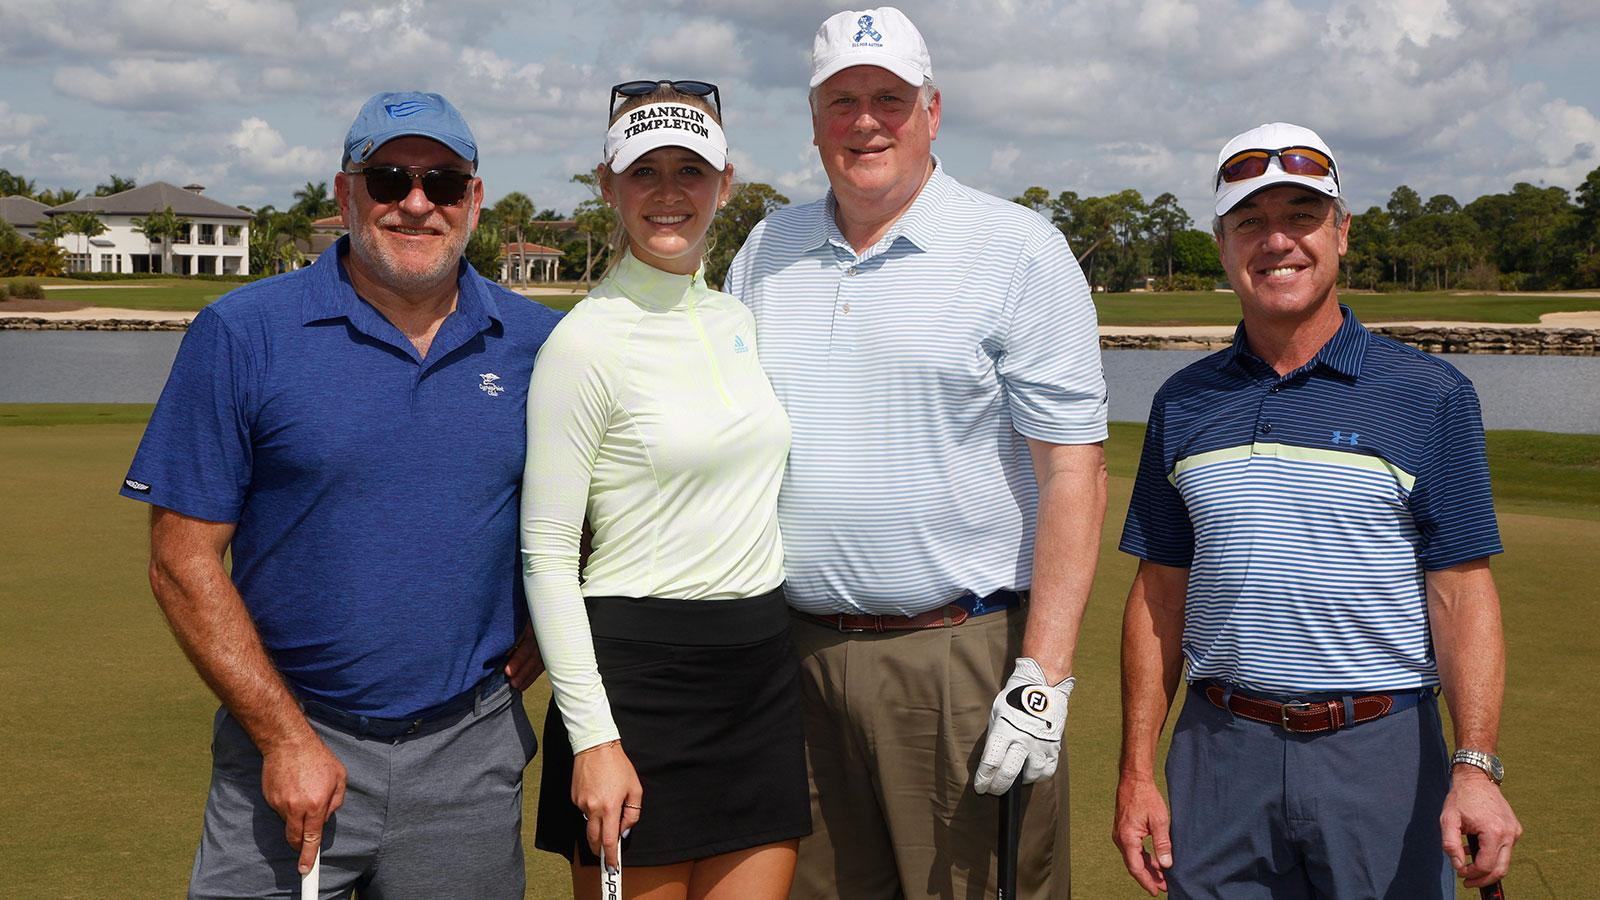 The winning team, featuring LPGA star Jessica Korda, shot 55. Her playing partners are Steve Collis, Steve Peck and Jerry DeMuro.